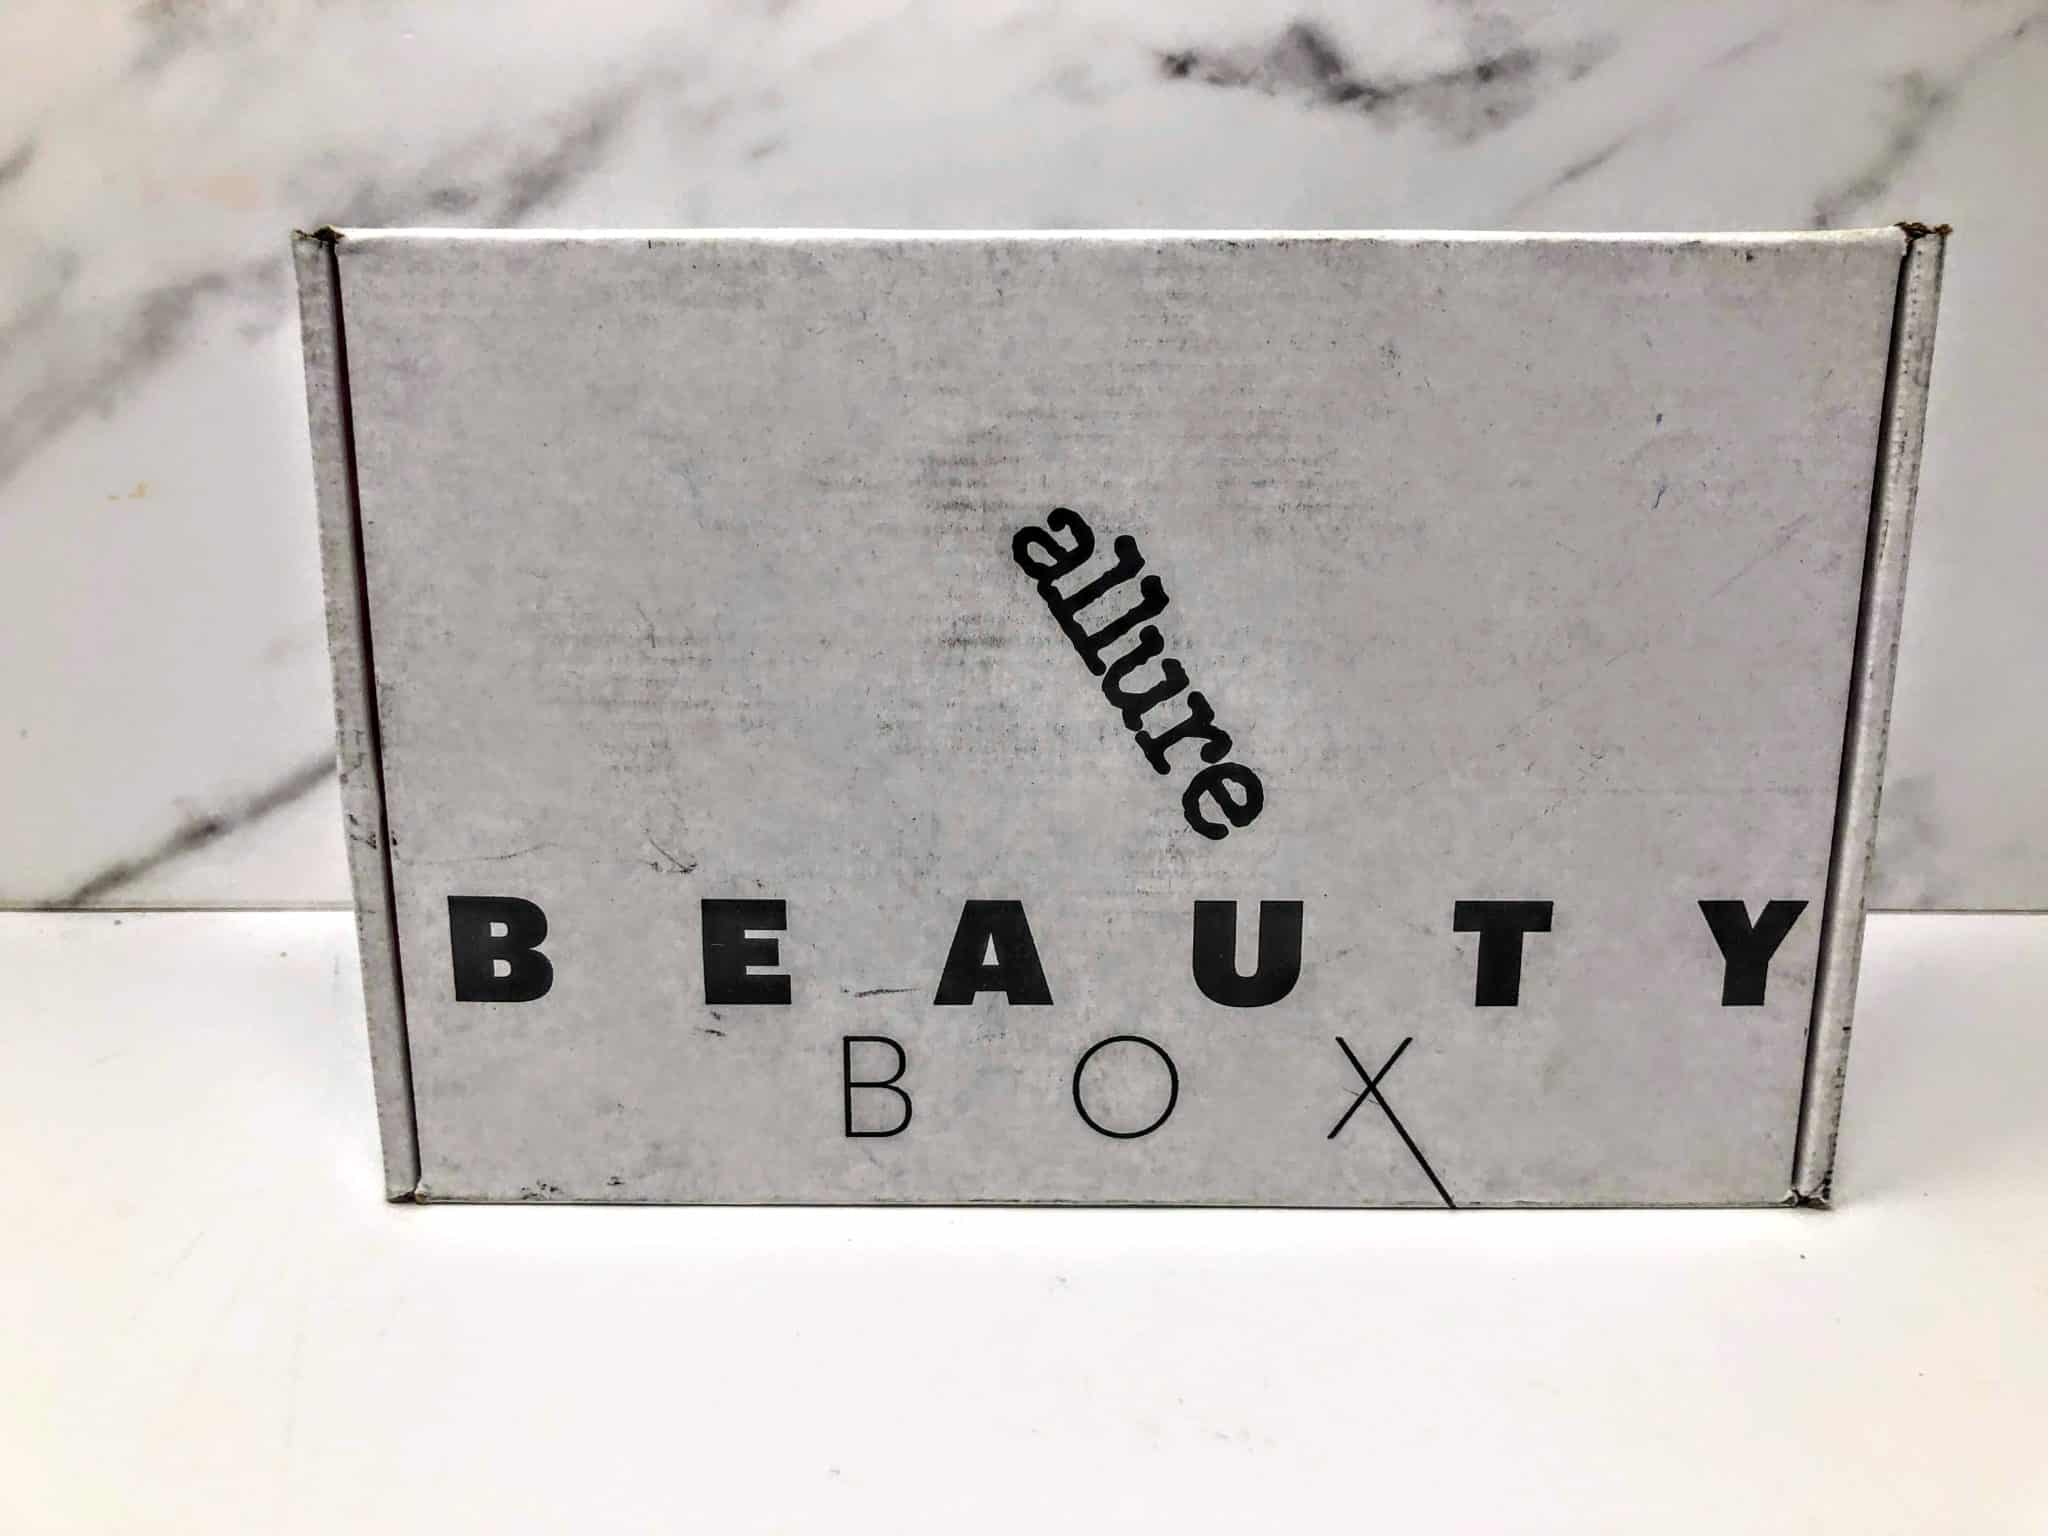 Allure Beauty Subscription Box Review + Unboxing + First Box $10 | March 2019